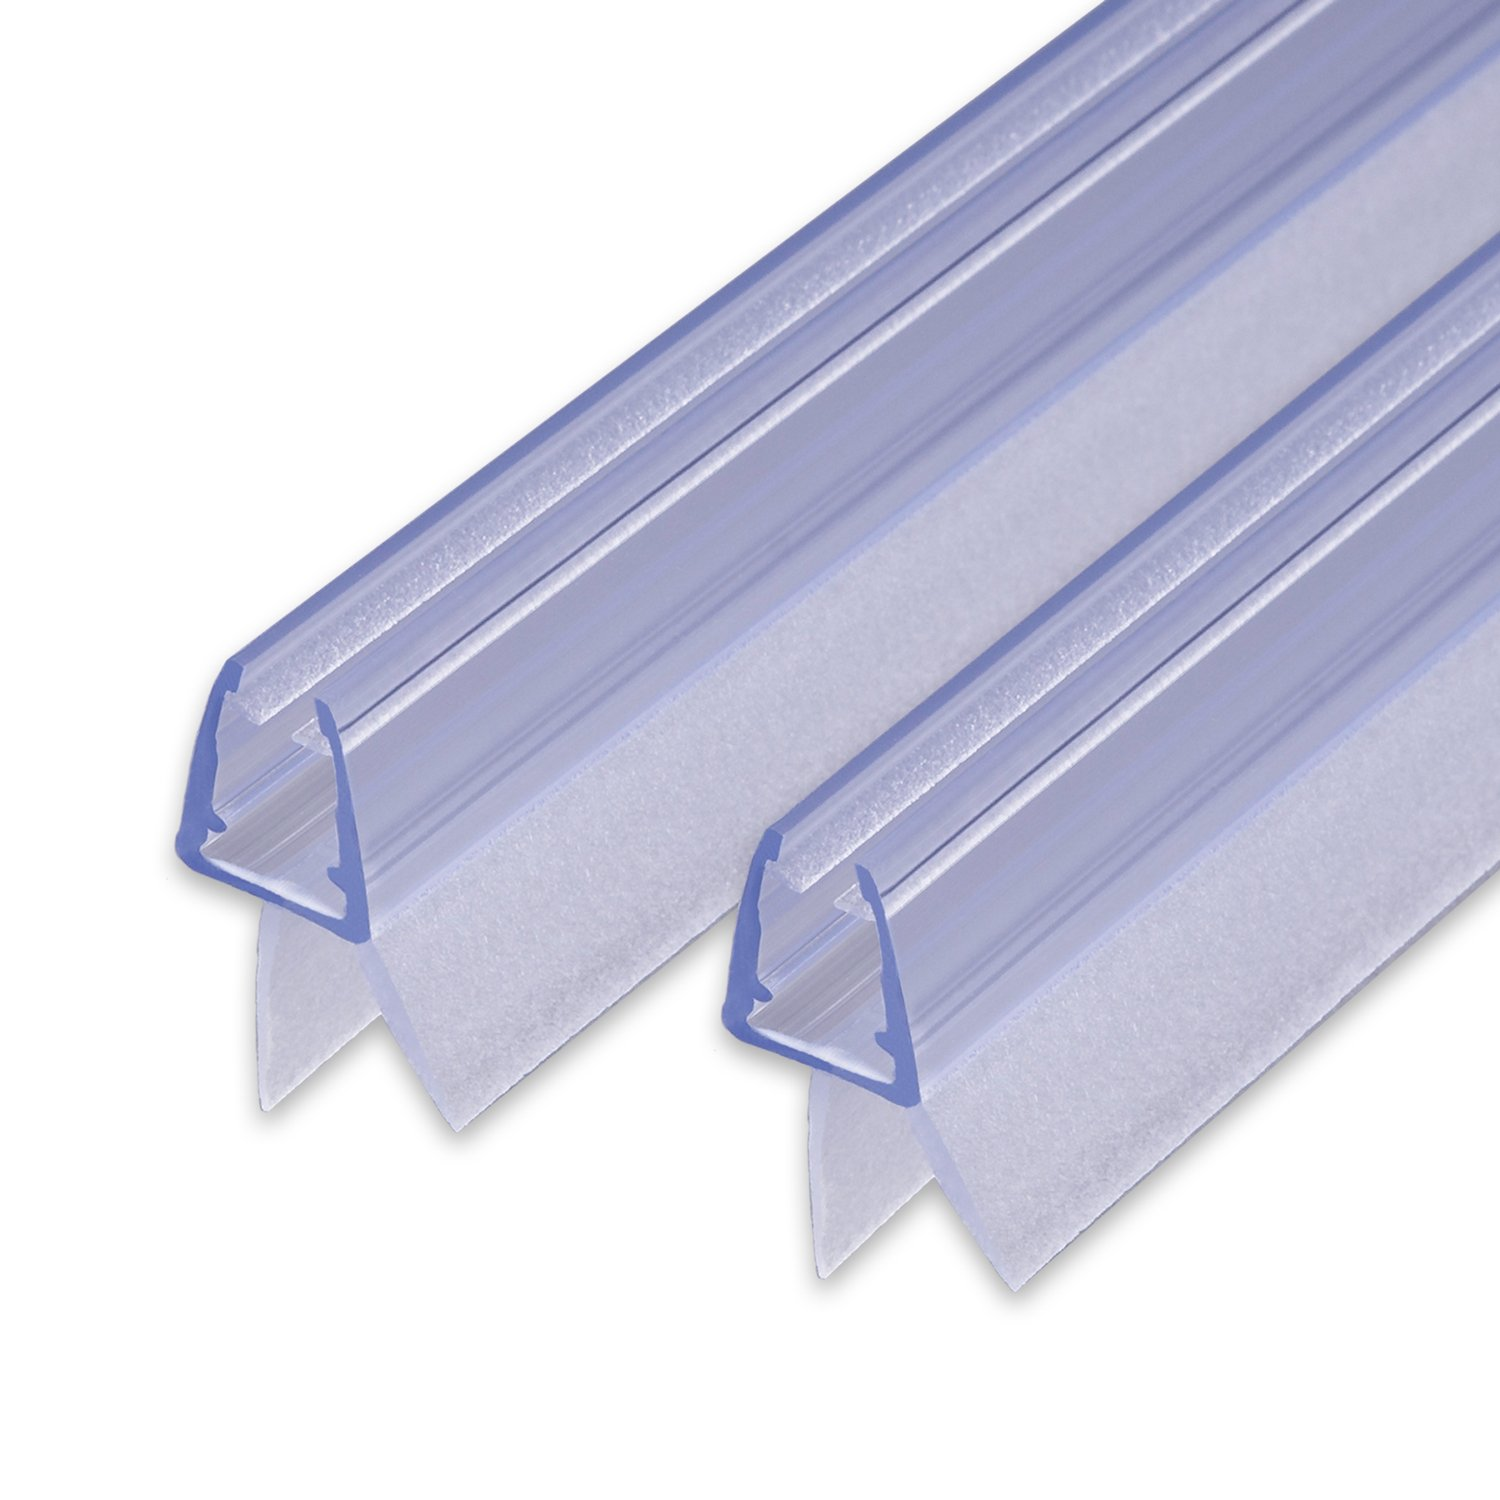 #S1001 splash guard for shower cabin shower seal water deflector 7 and 8 mm glass thickness Replacement seal with sealing pipe for 6